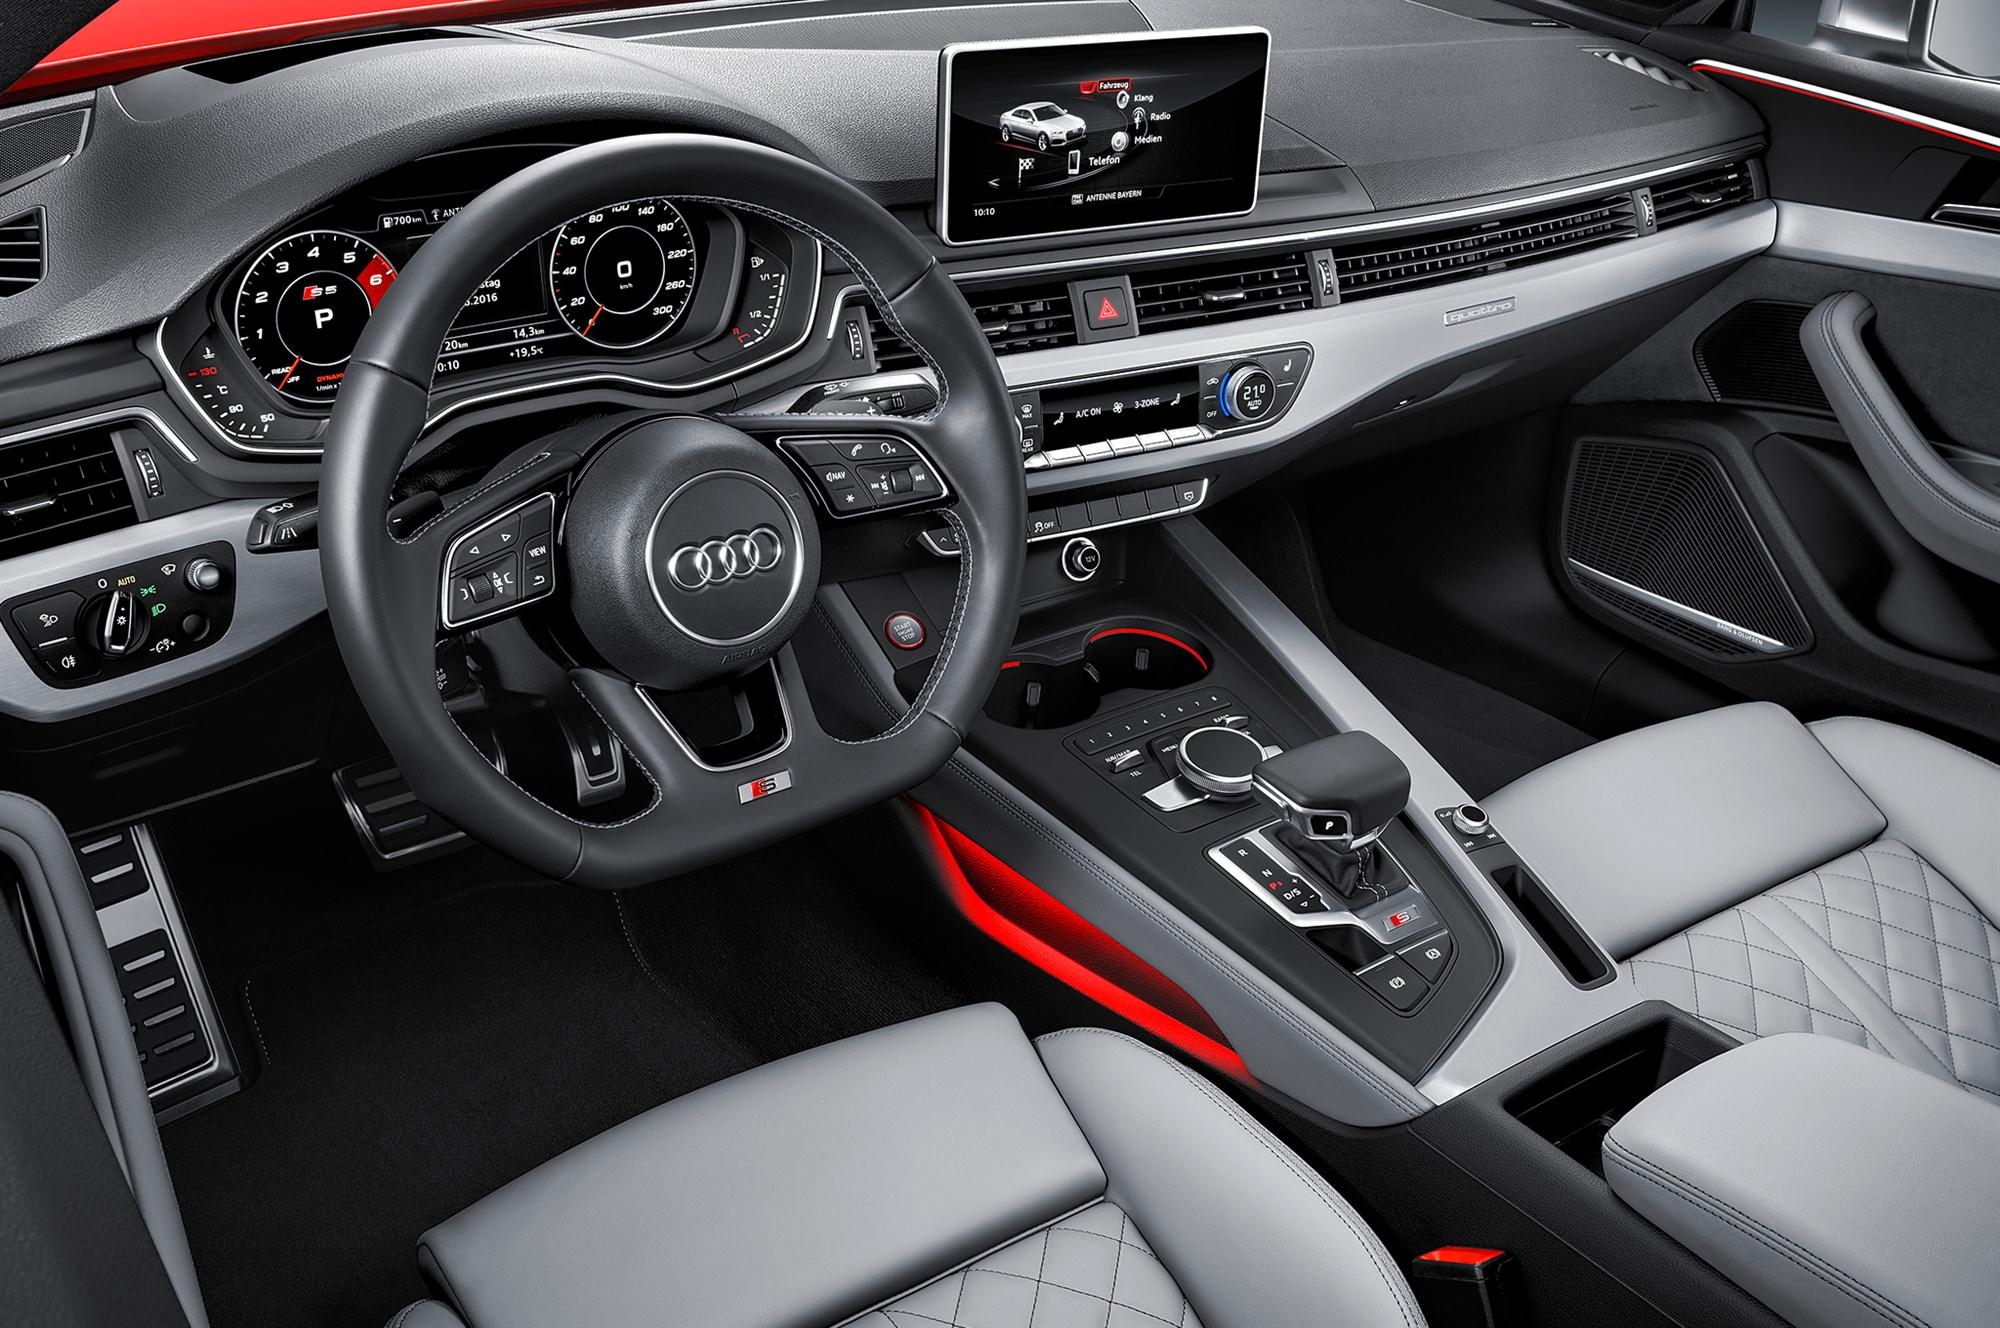 2018 audi rs5 interior look new suv price. Black Bedroom Furniture Sets. Home Design Ideas